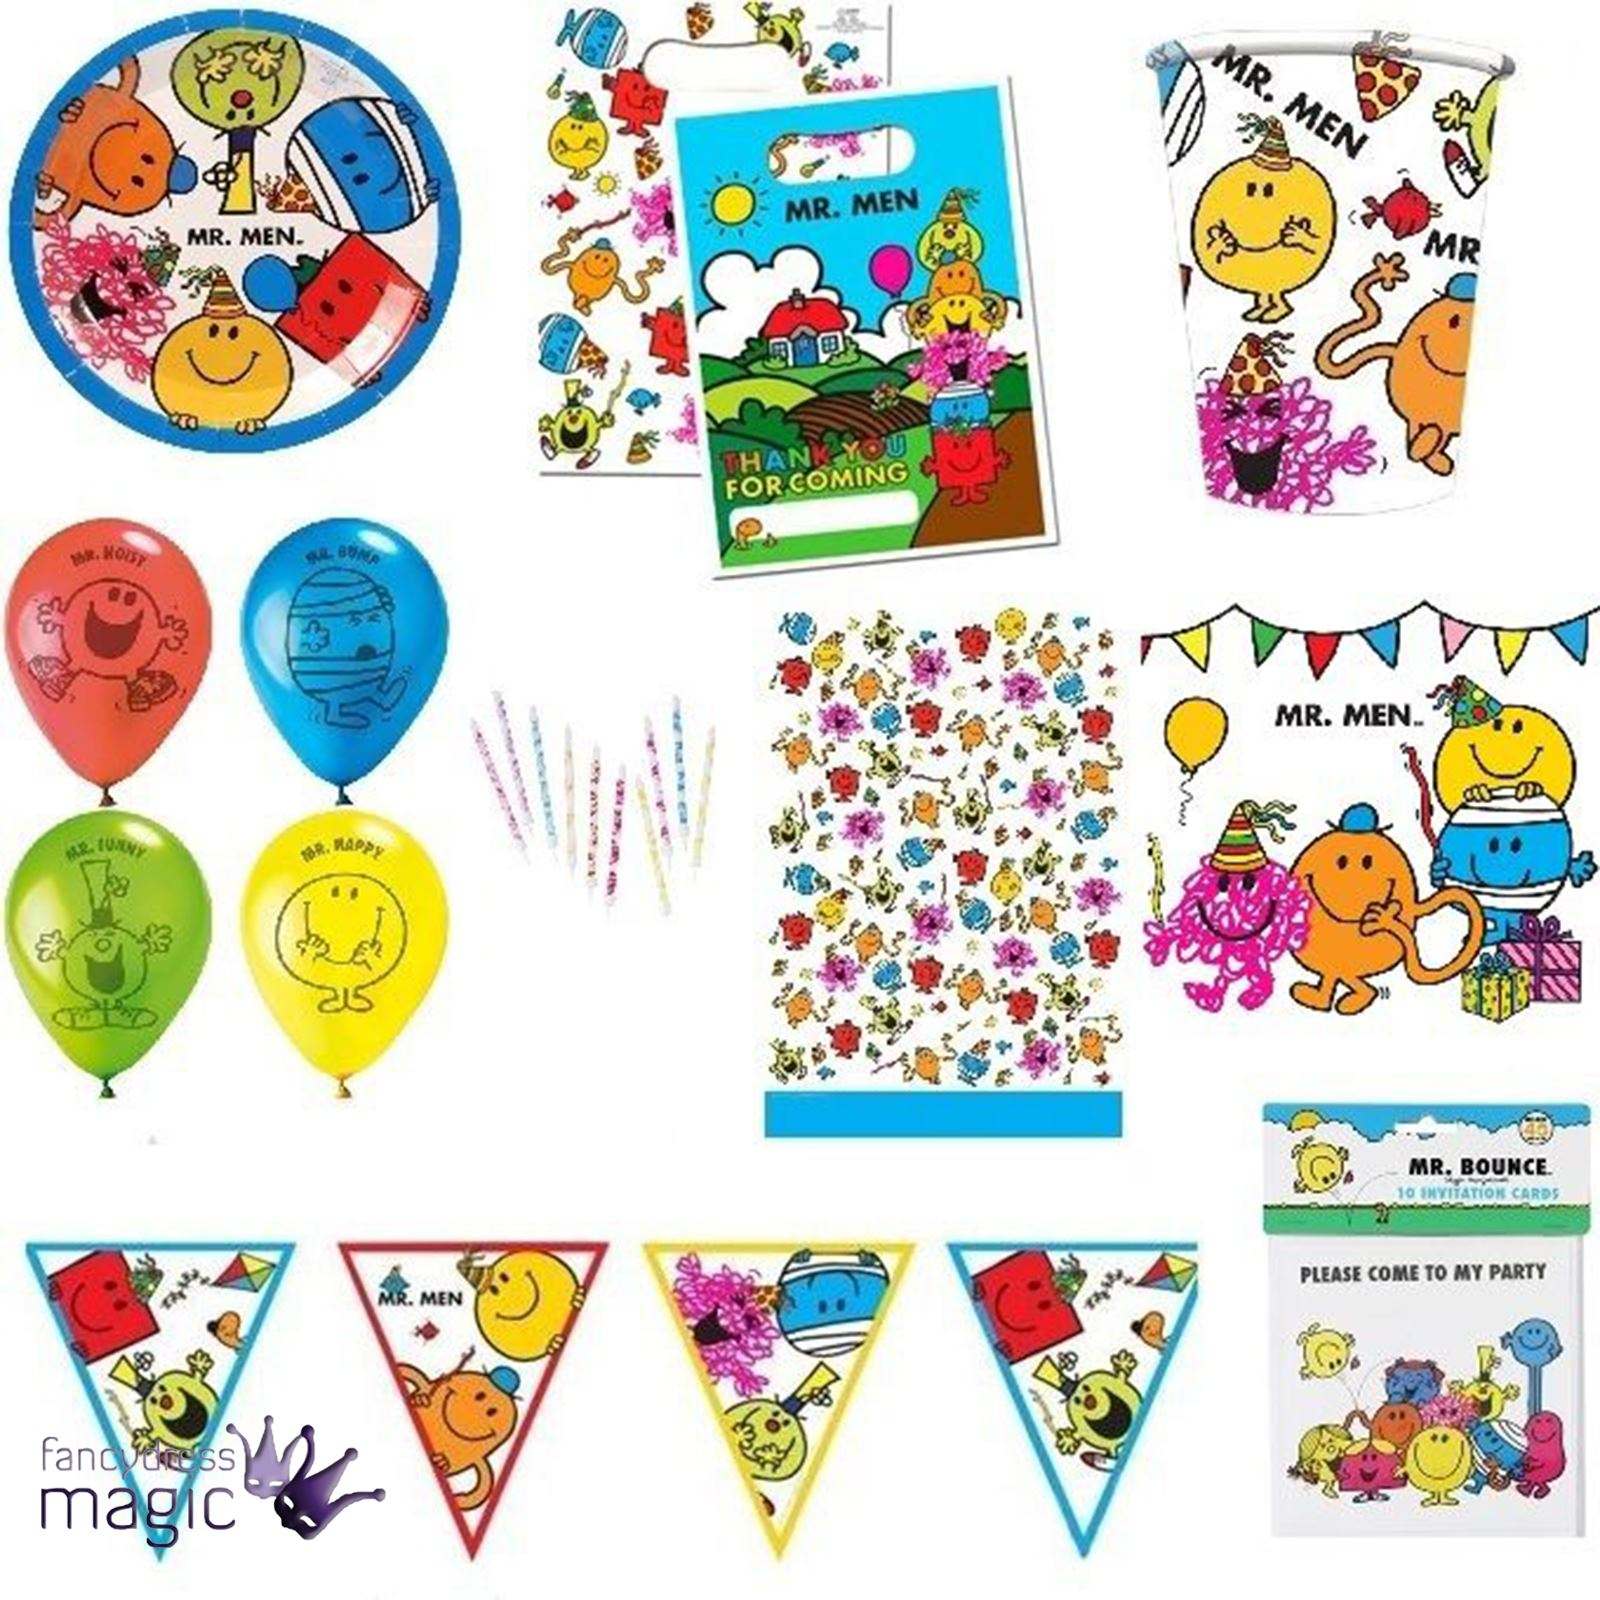 Mr Men Little Miss Roger Hargreaves Kid Child Birthday Party Favour ...